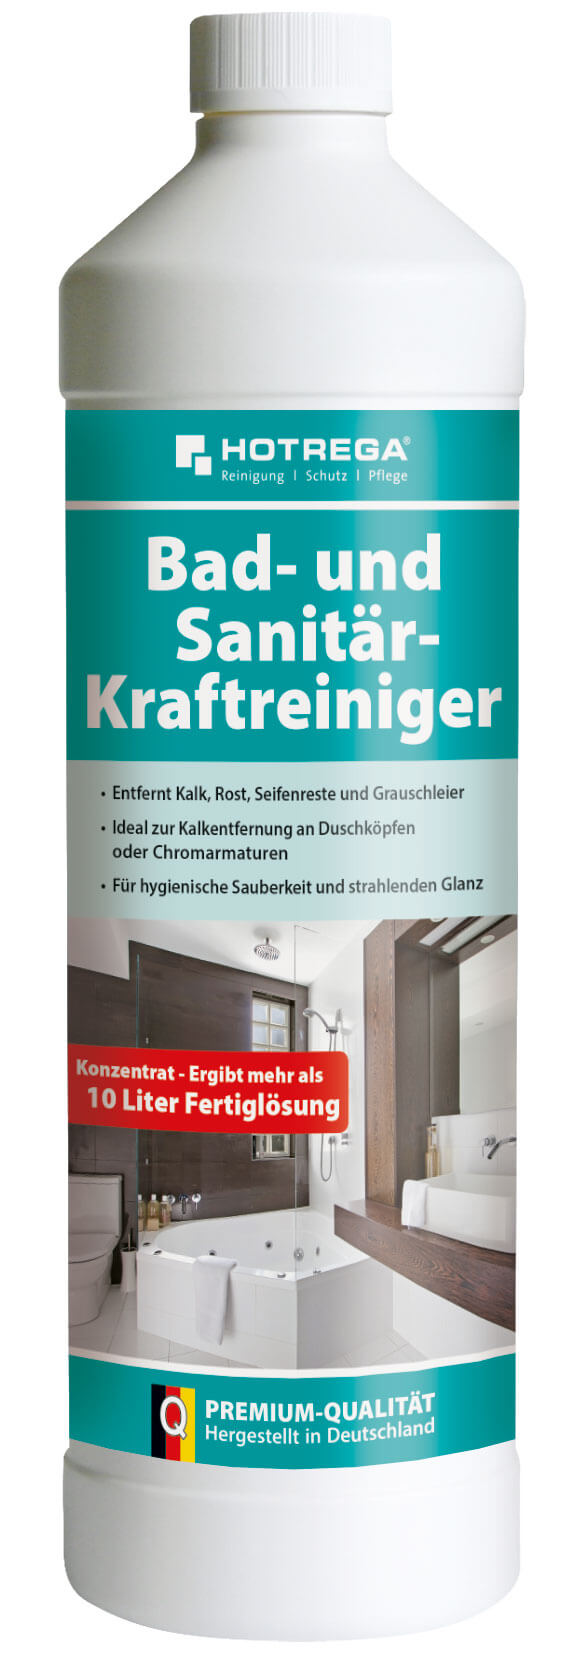 hotrega bad und sanit r kraftreiniger 1 liter flasche konzentrat g nstig online bestellen. Black Bedroom Furniture Sets. Home Design Ideas